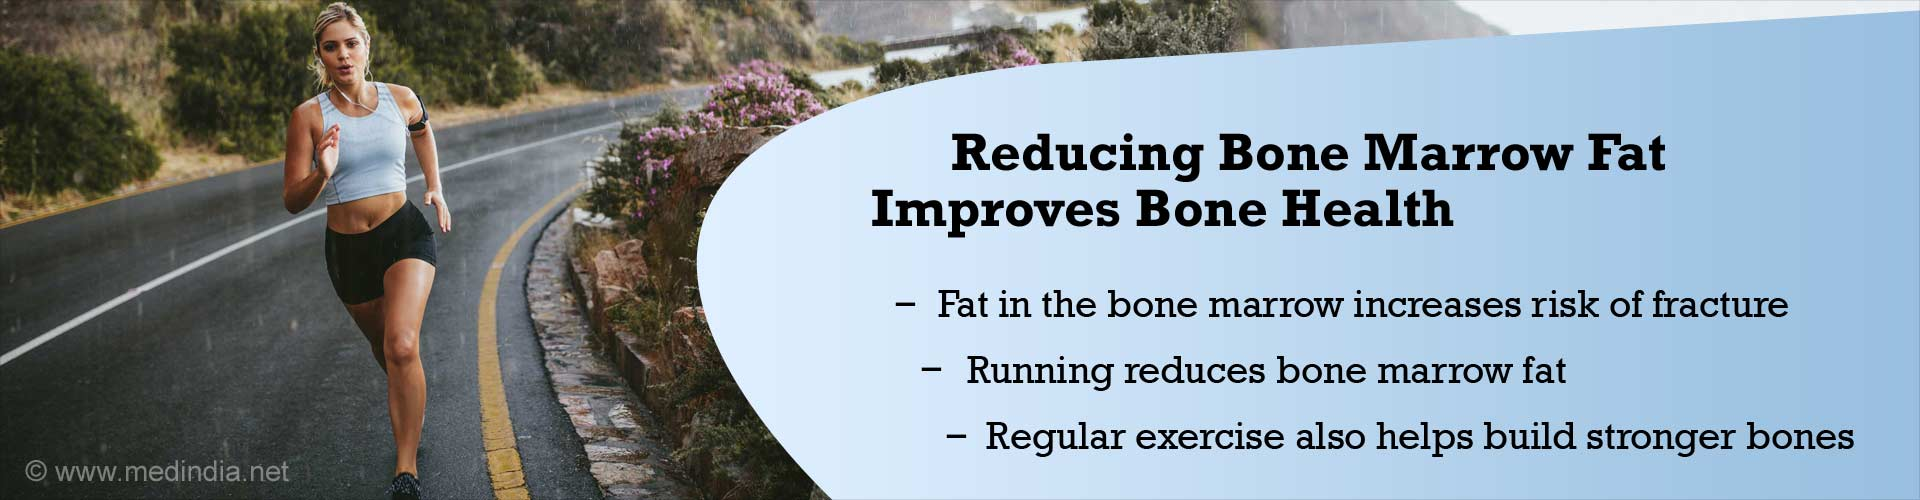 Exercise Burns Bone Fat, Improves Bone Health in Obese Adults